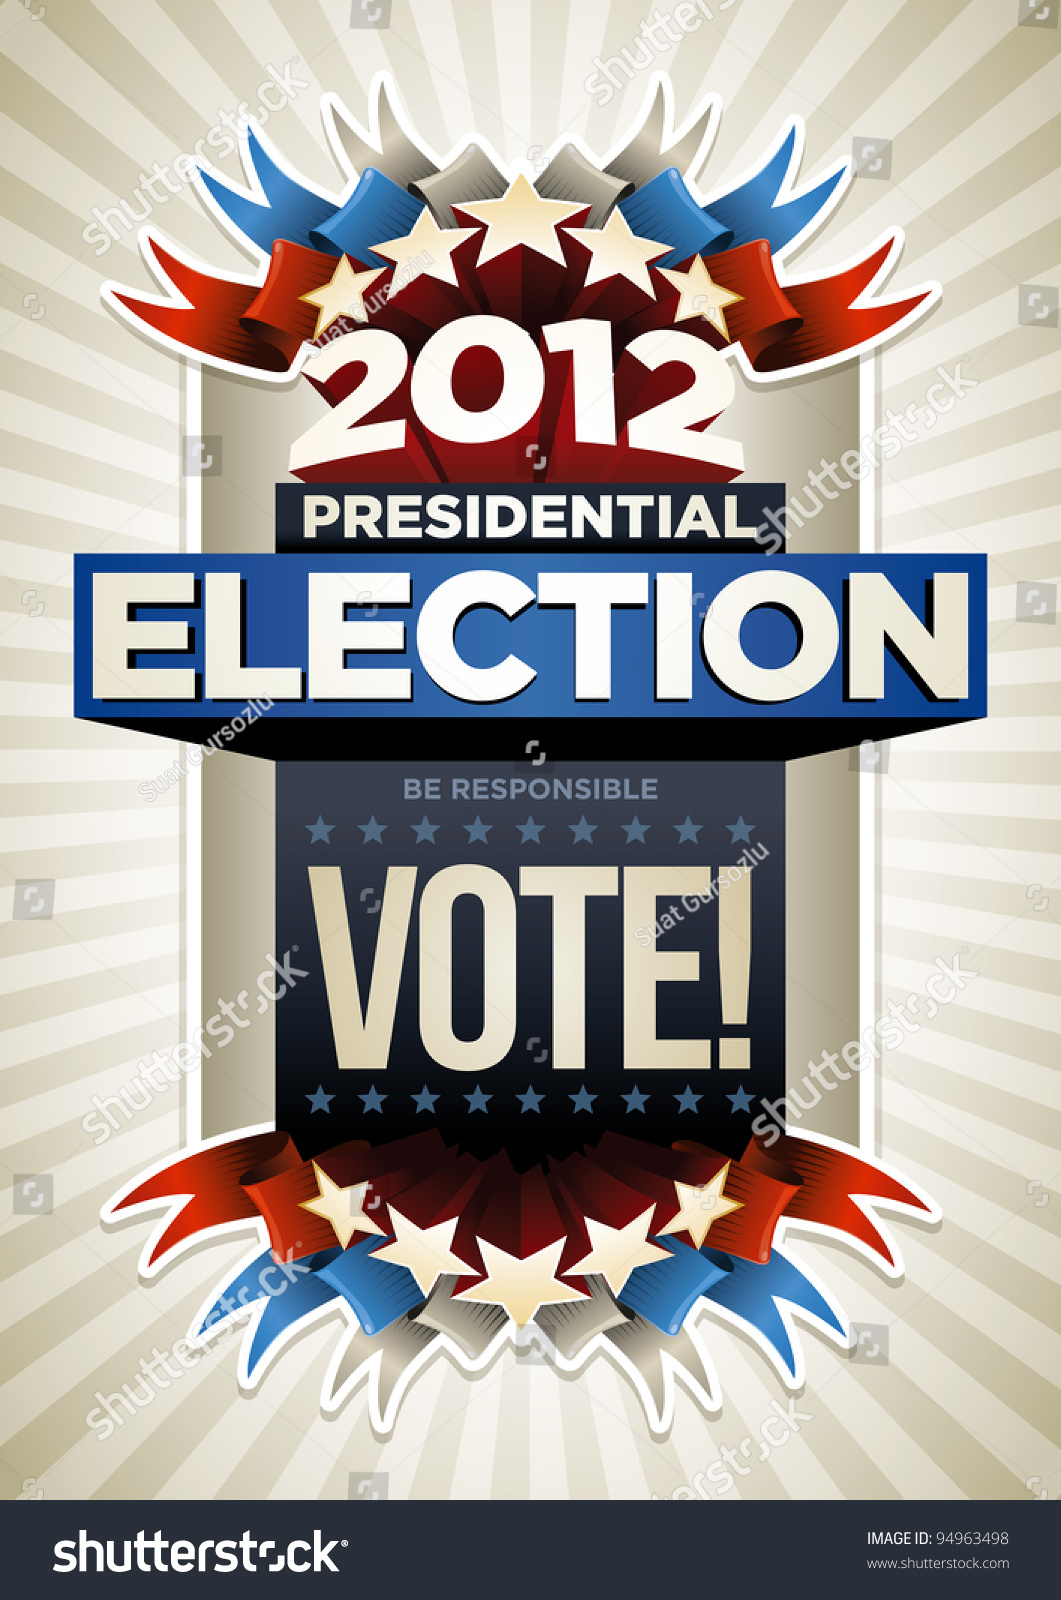 Poster design elements - 2012 Presidential Election Poster Design Elements Are Layered Separately In Vector File